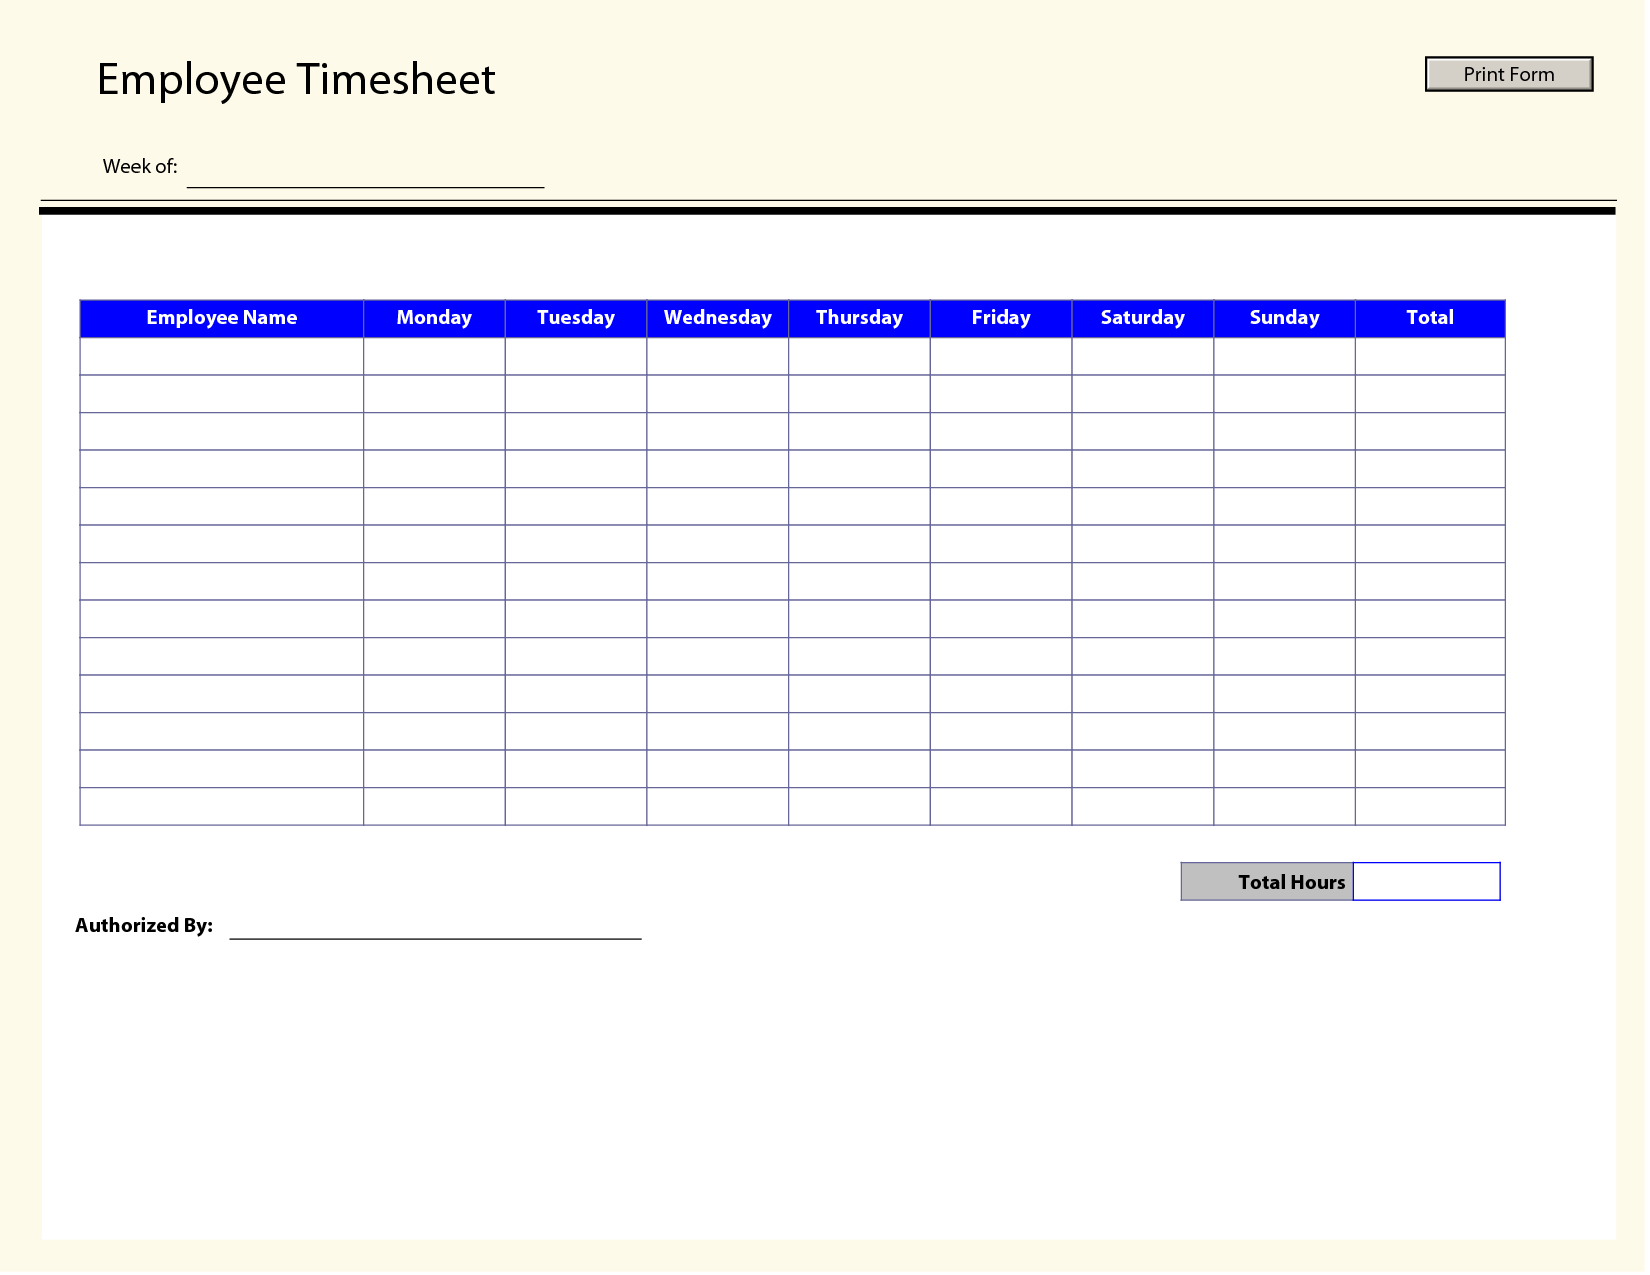 Printable Time Sheets | Free Printable Employee Timesheets Employee  Timesheet Print Form Week ... Templates ...  Application For Employment Template Free